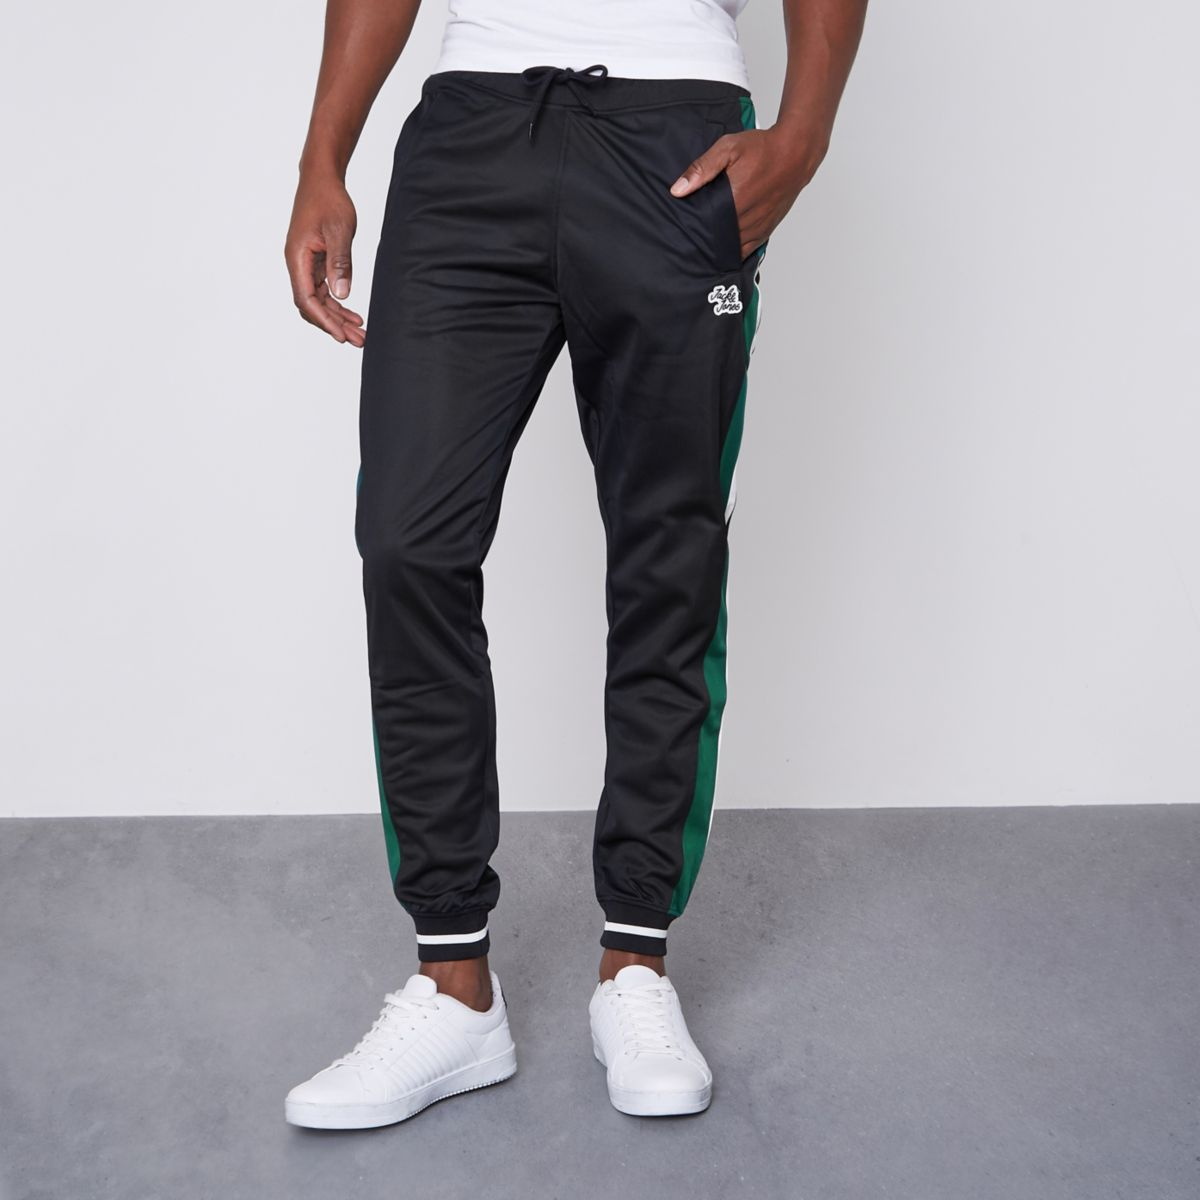 Black Jack & Jones tracksuit joggers